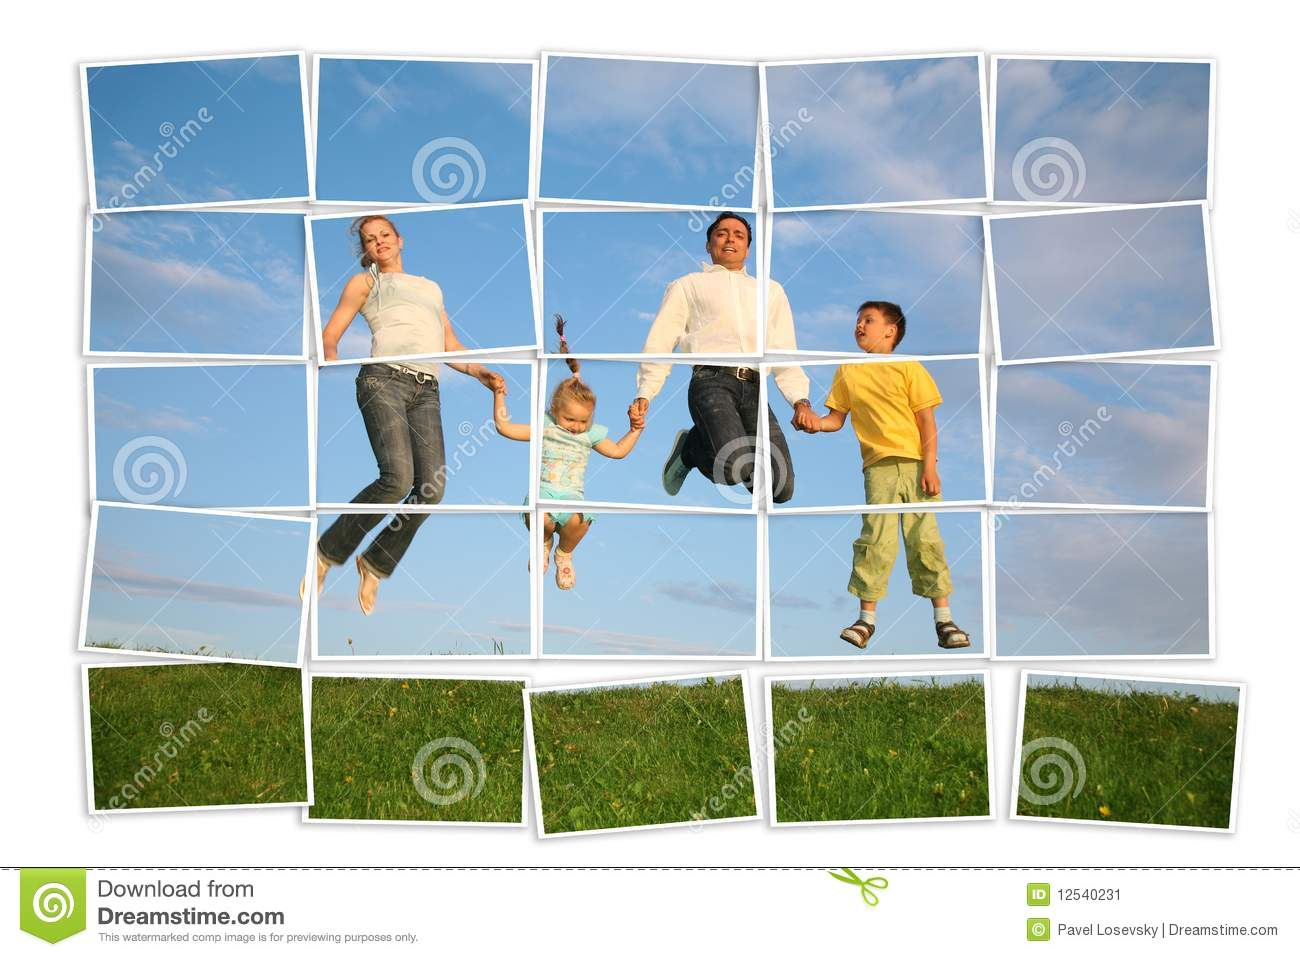 Jumping family on grass, collage